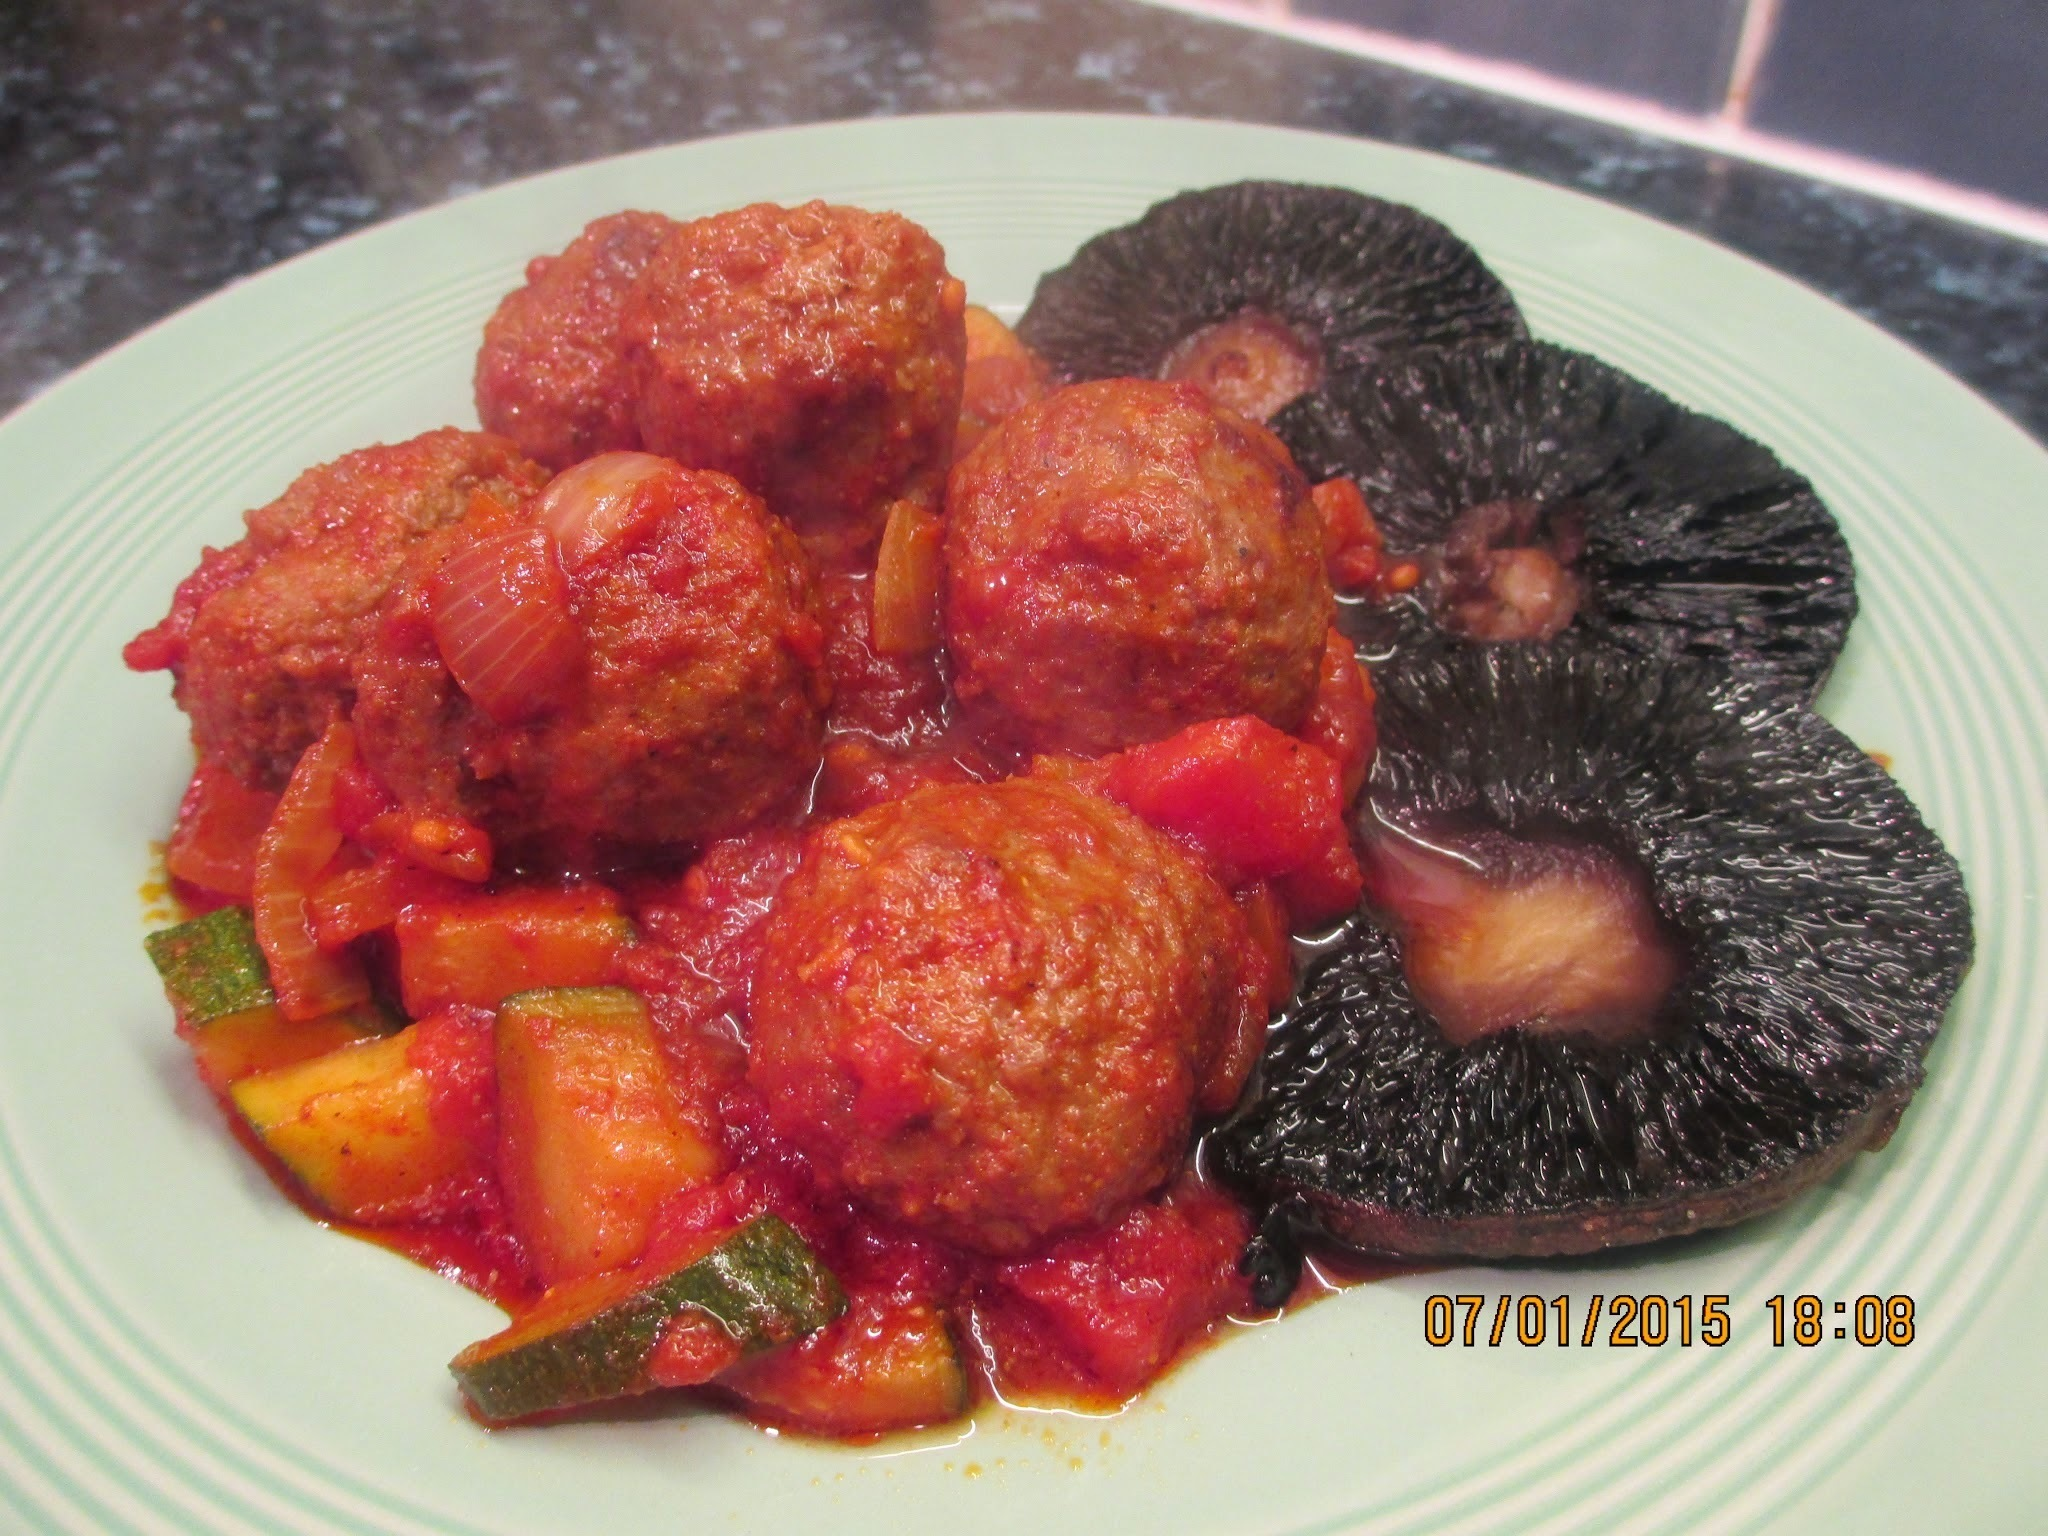 Meatballs in tomato sauce with grilled field mushrooms.